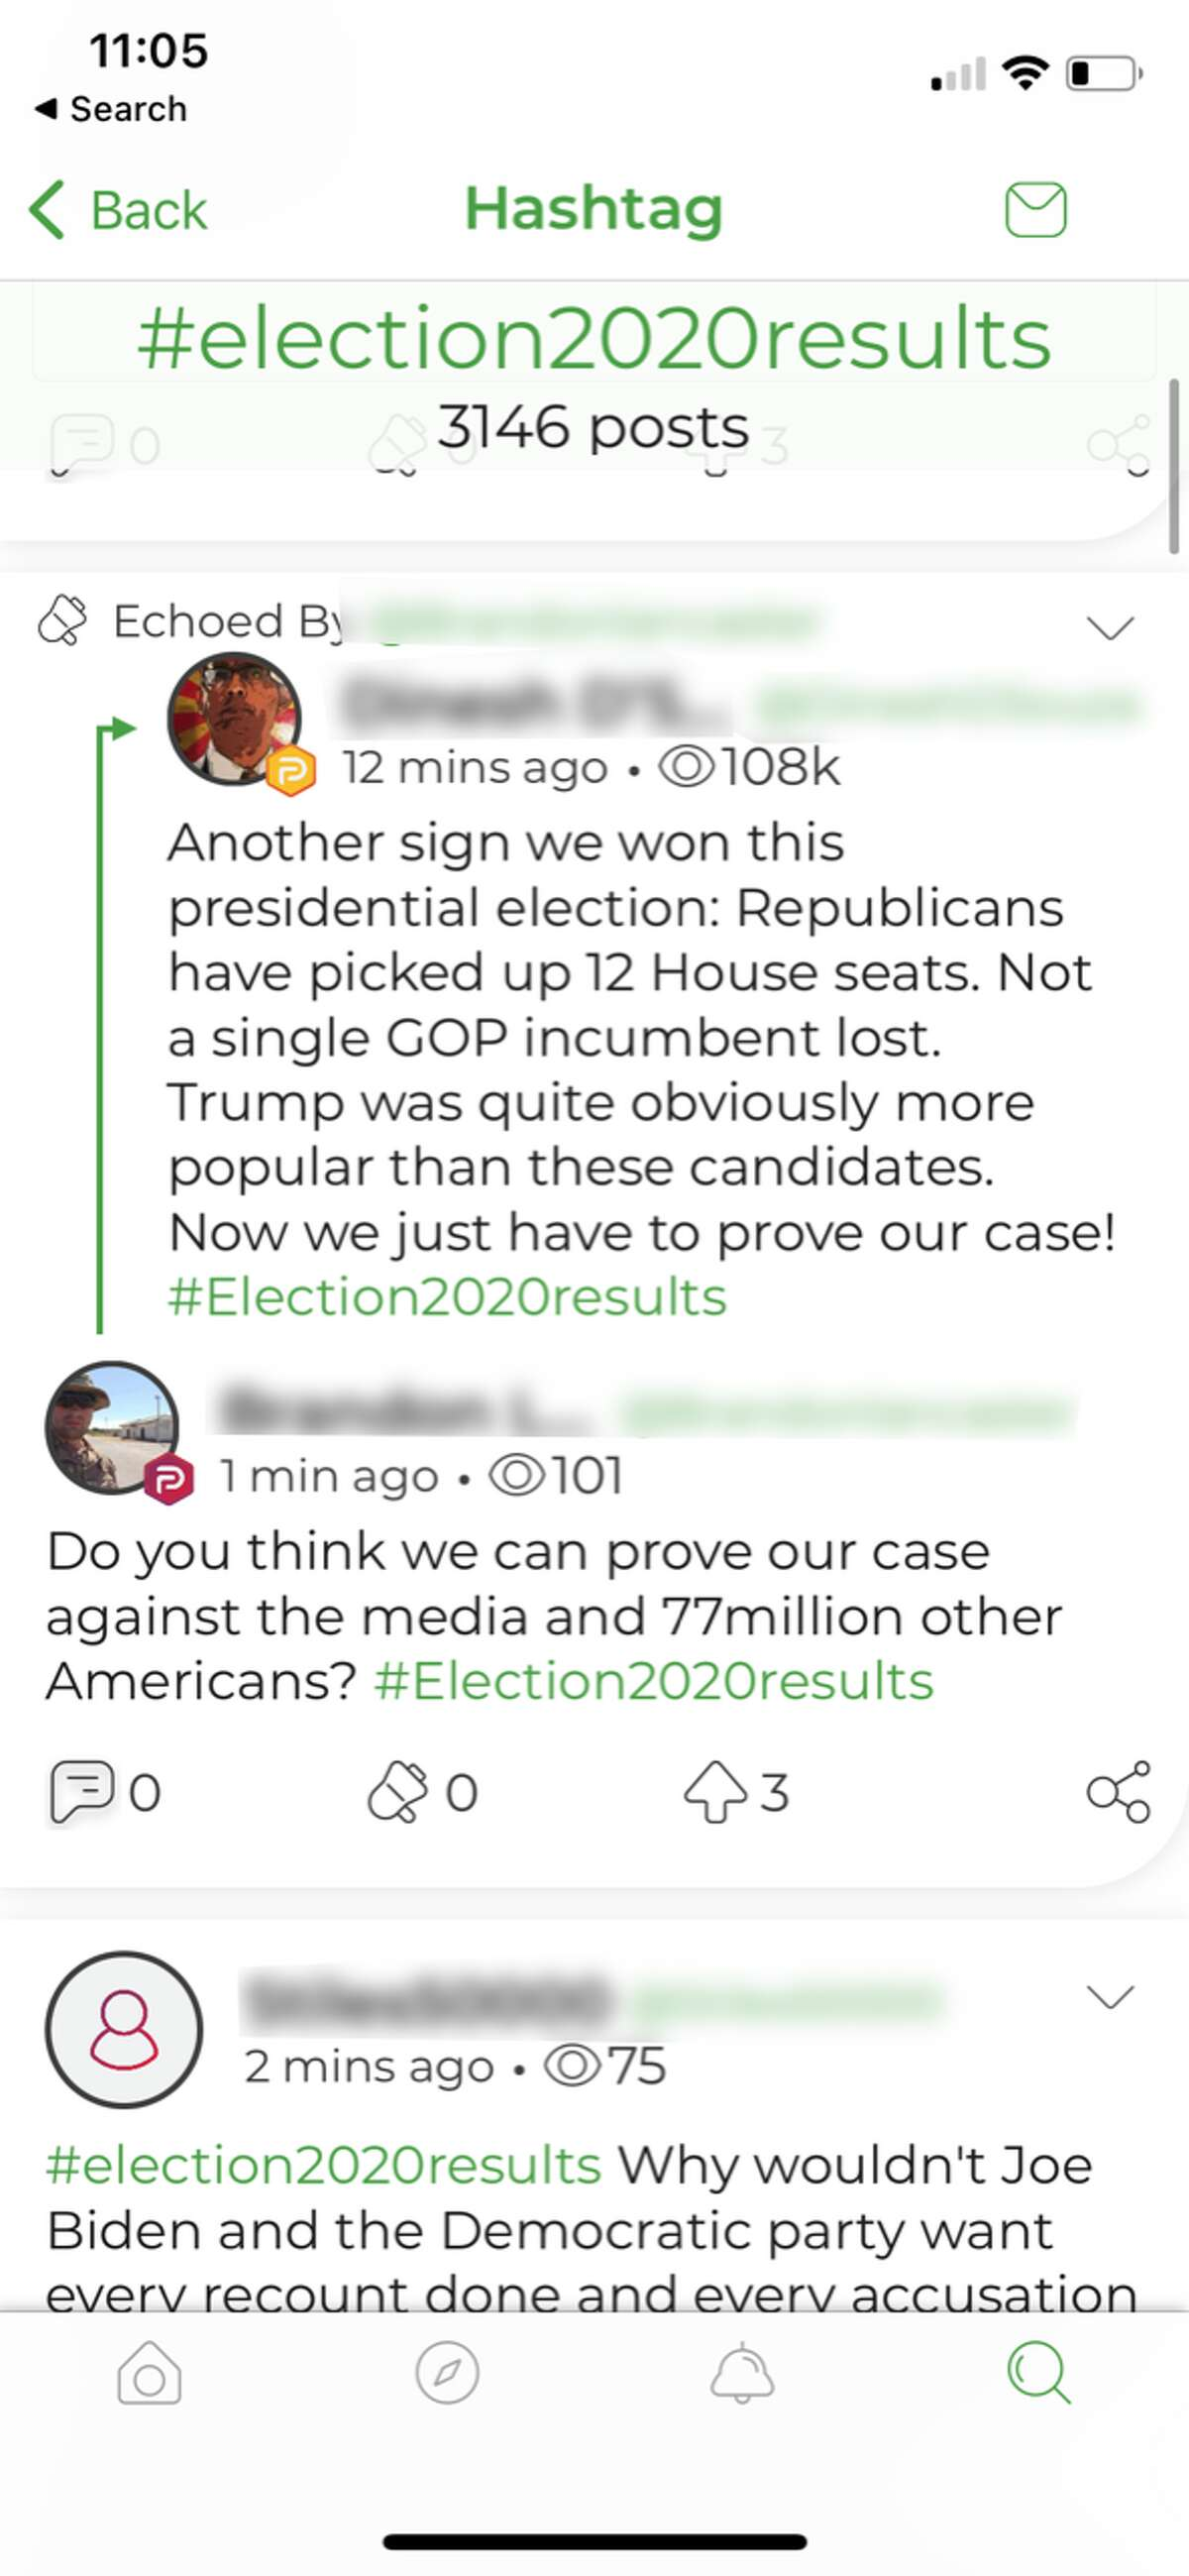 A screenshot showing some of the discourse that is common on Parler, a new social media app aimed at conservative users disillusioned with Facebook and Twitter.